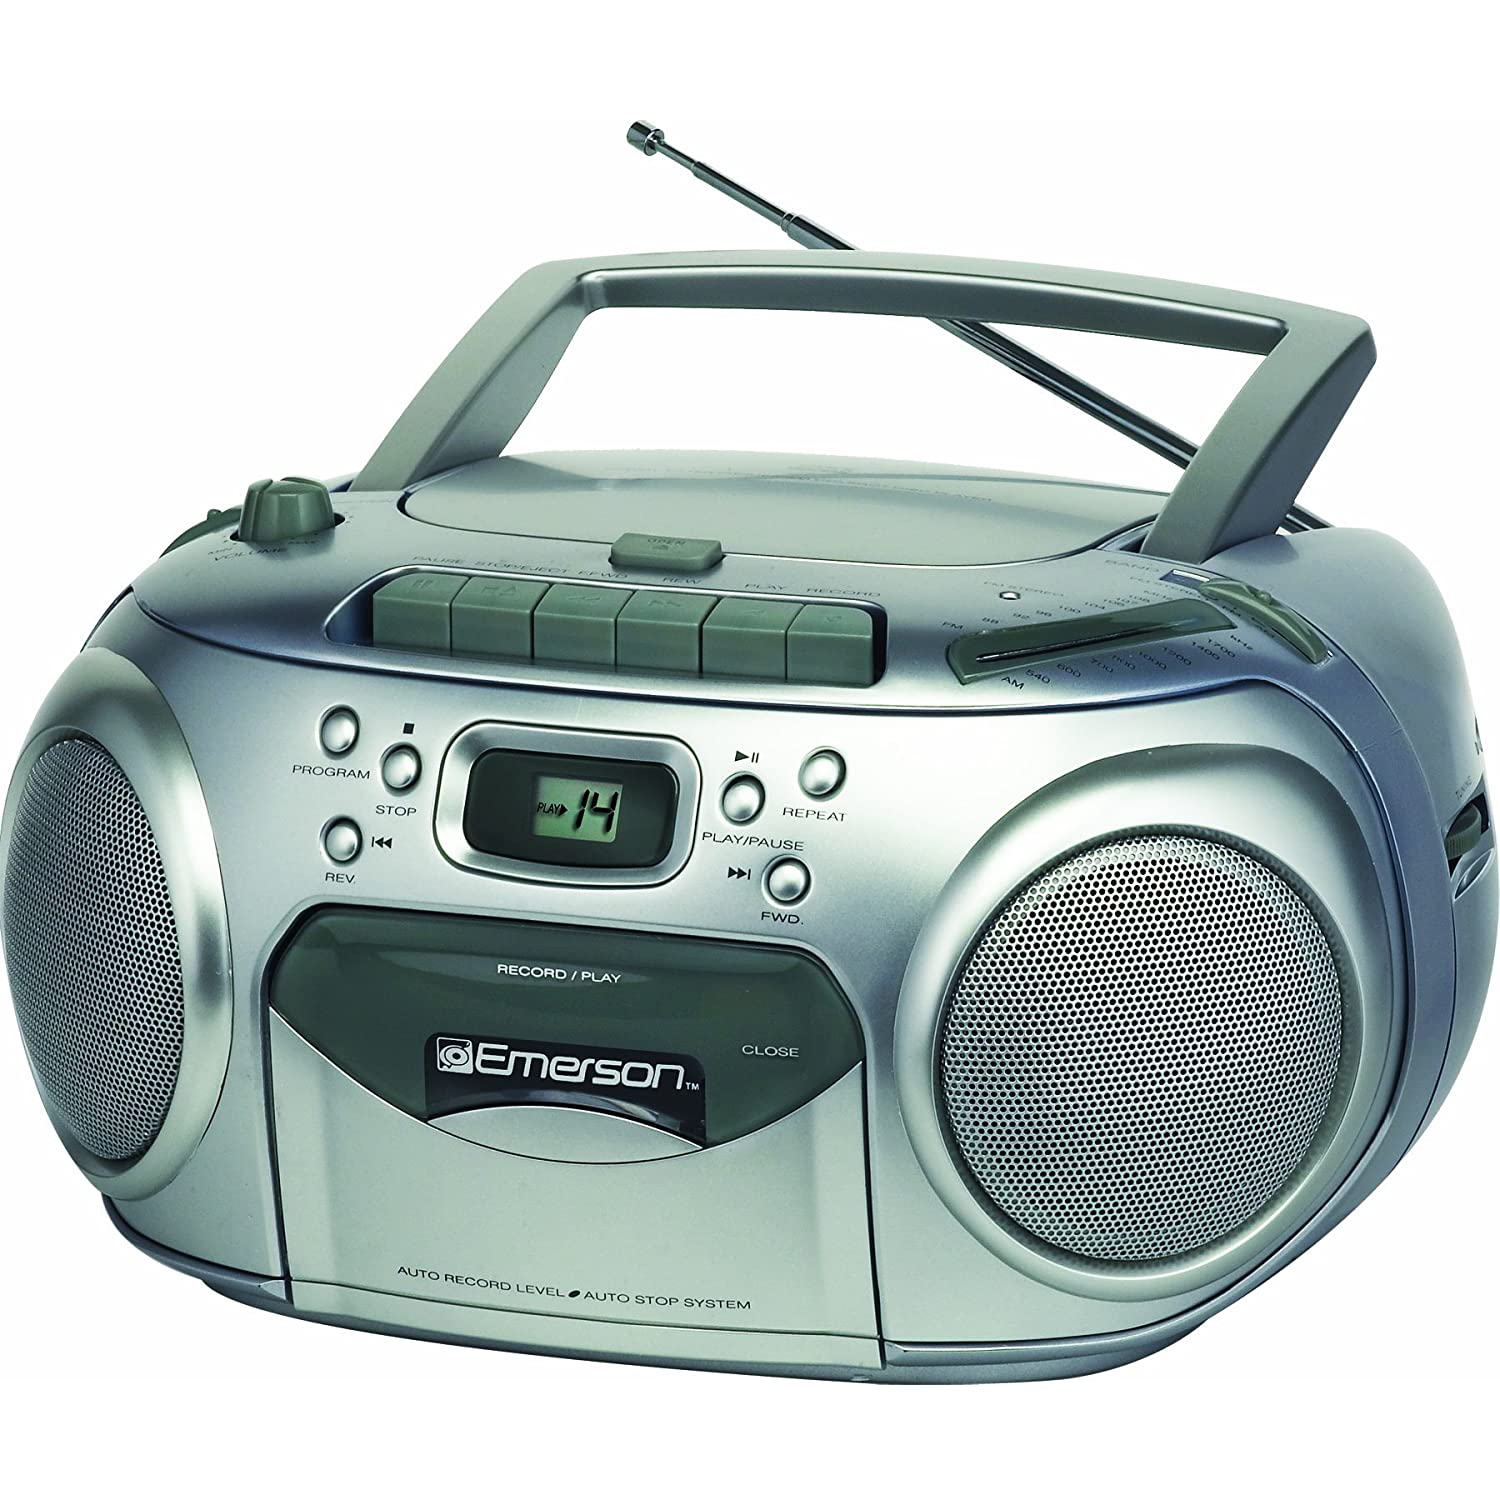 emerson pd6548sl portable radio cd player with cassette recorder am fm stereo ebay. Black Bedroom Furniture Sets. Home Design Ideas